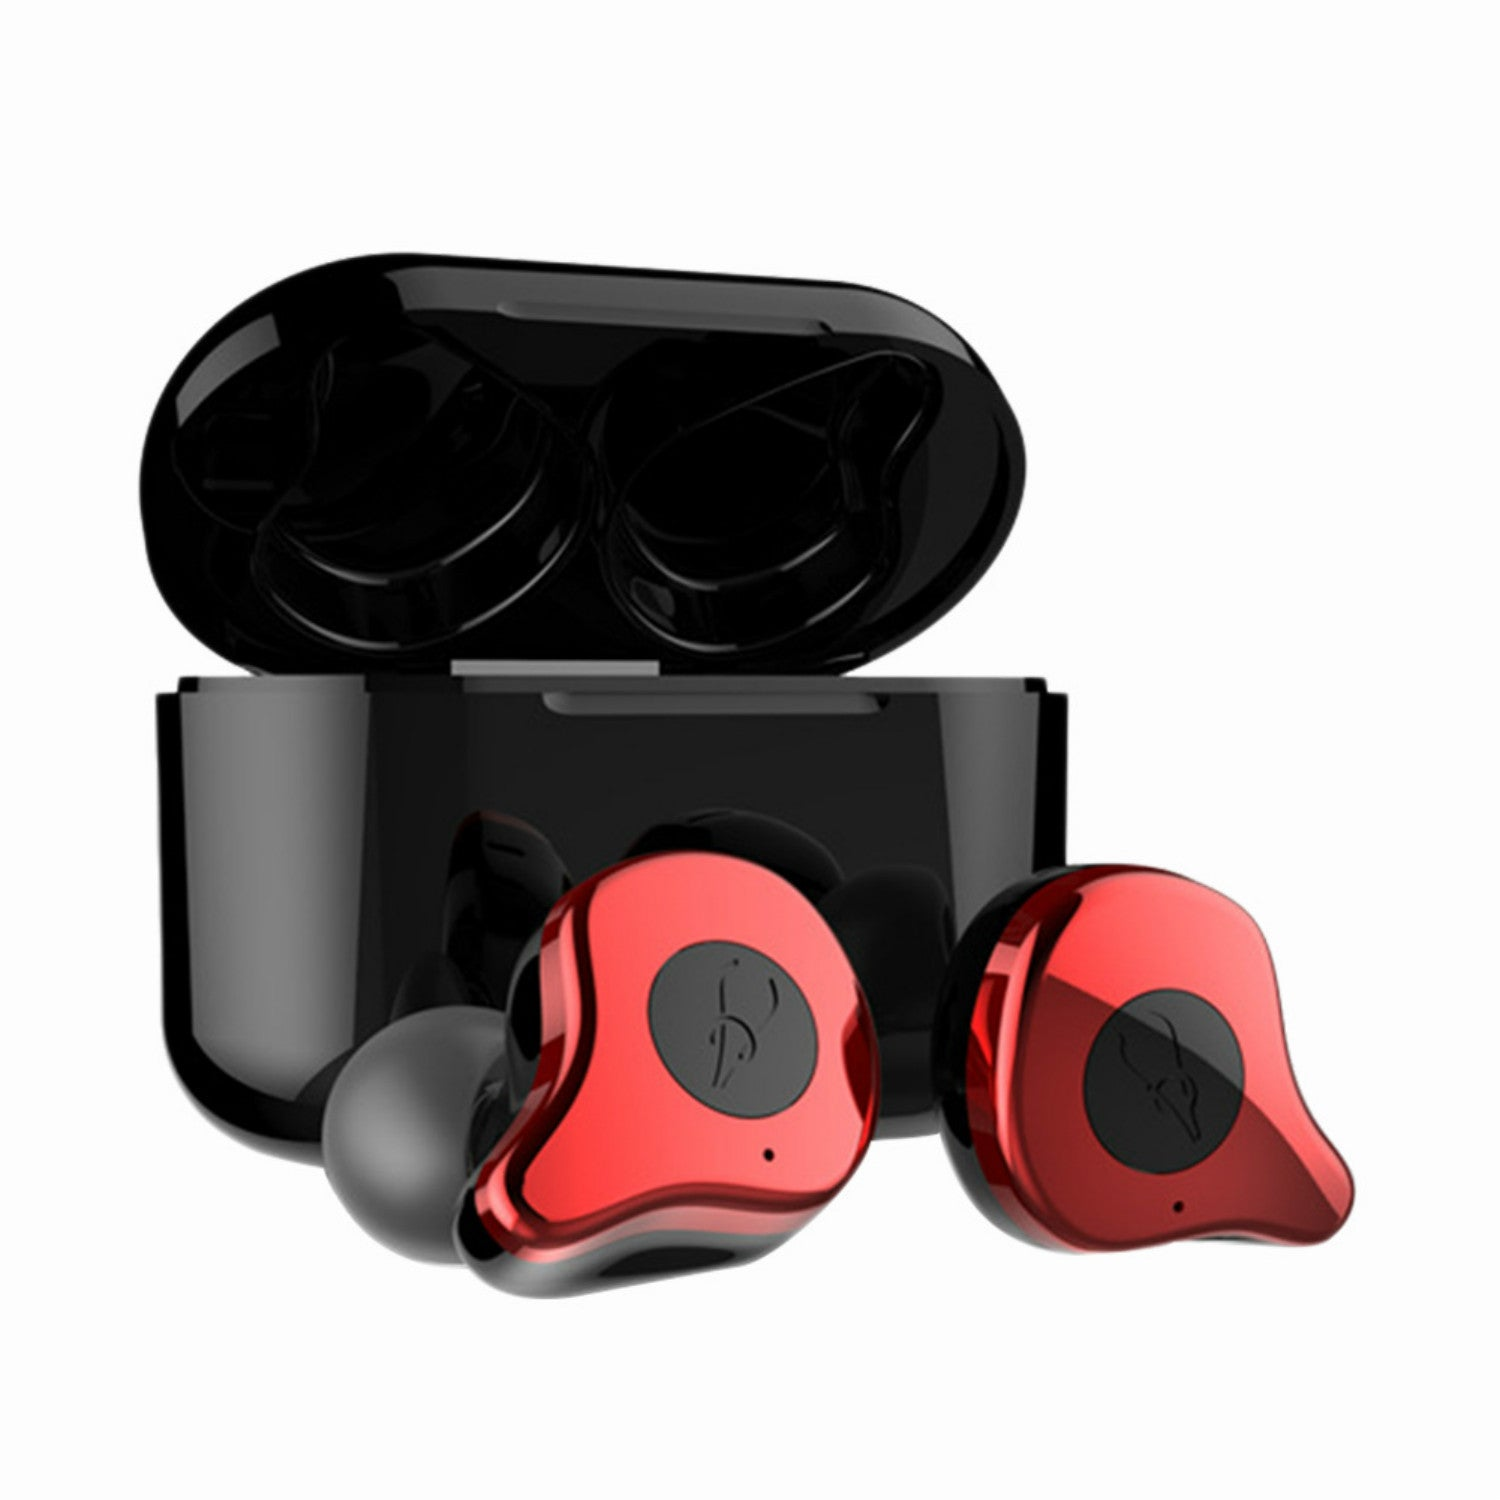 TWS Wireless Bluetooth Earphone HIFI Monitor Noise In ear Sport Headset Wireless Charging Box